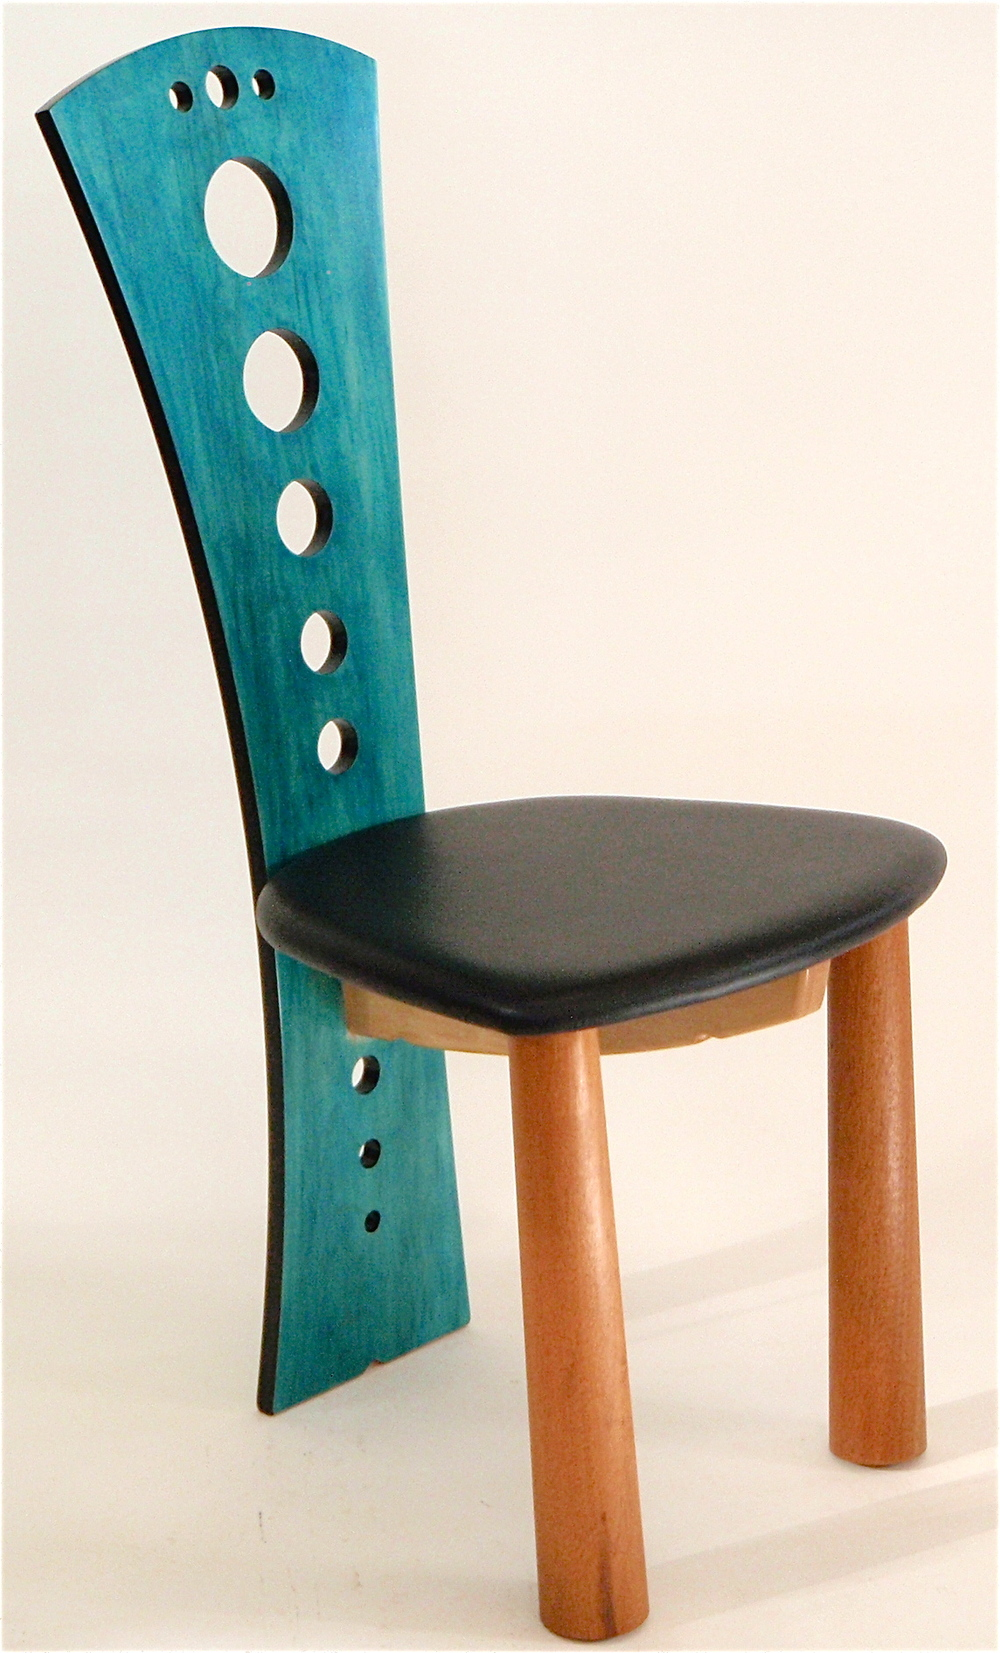 Curved-back chair